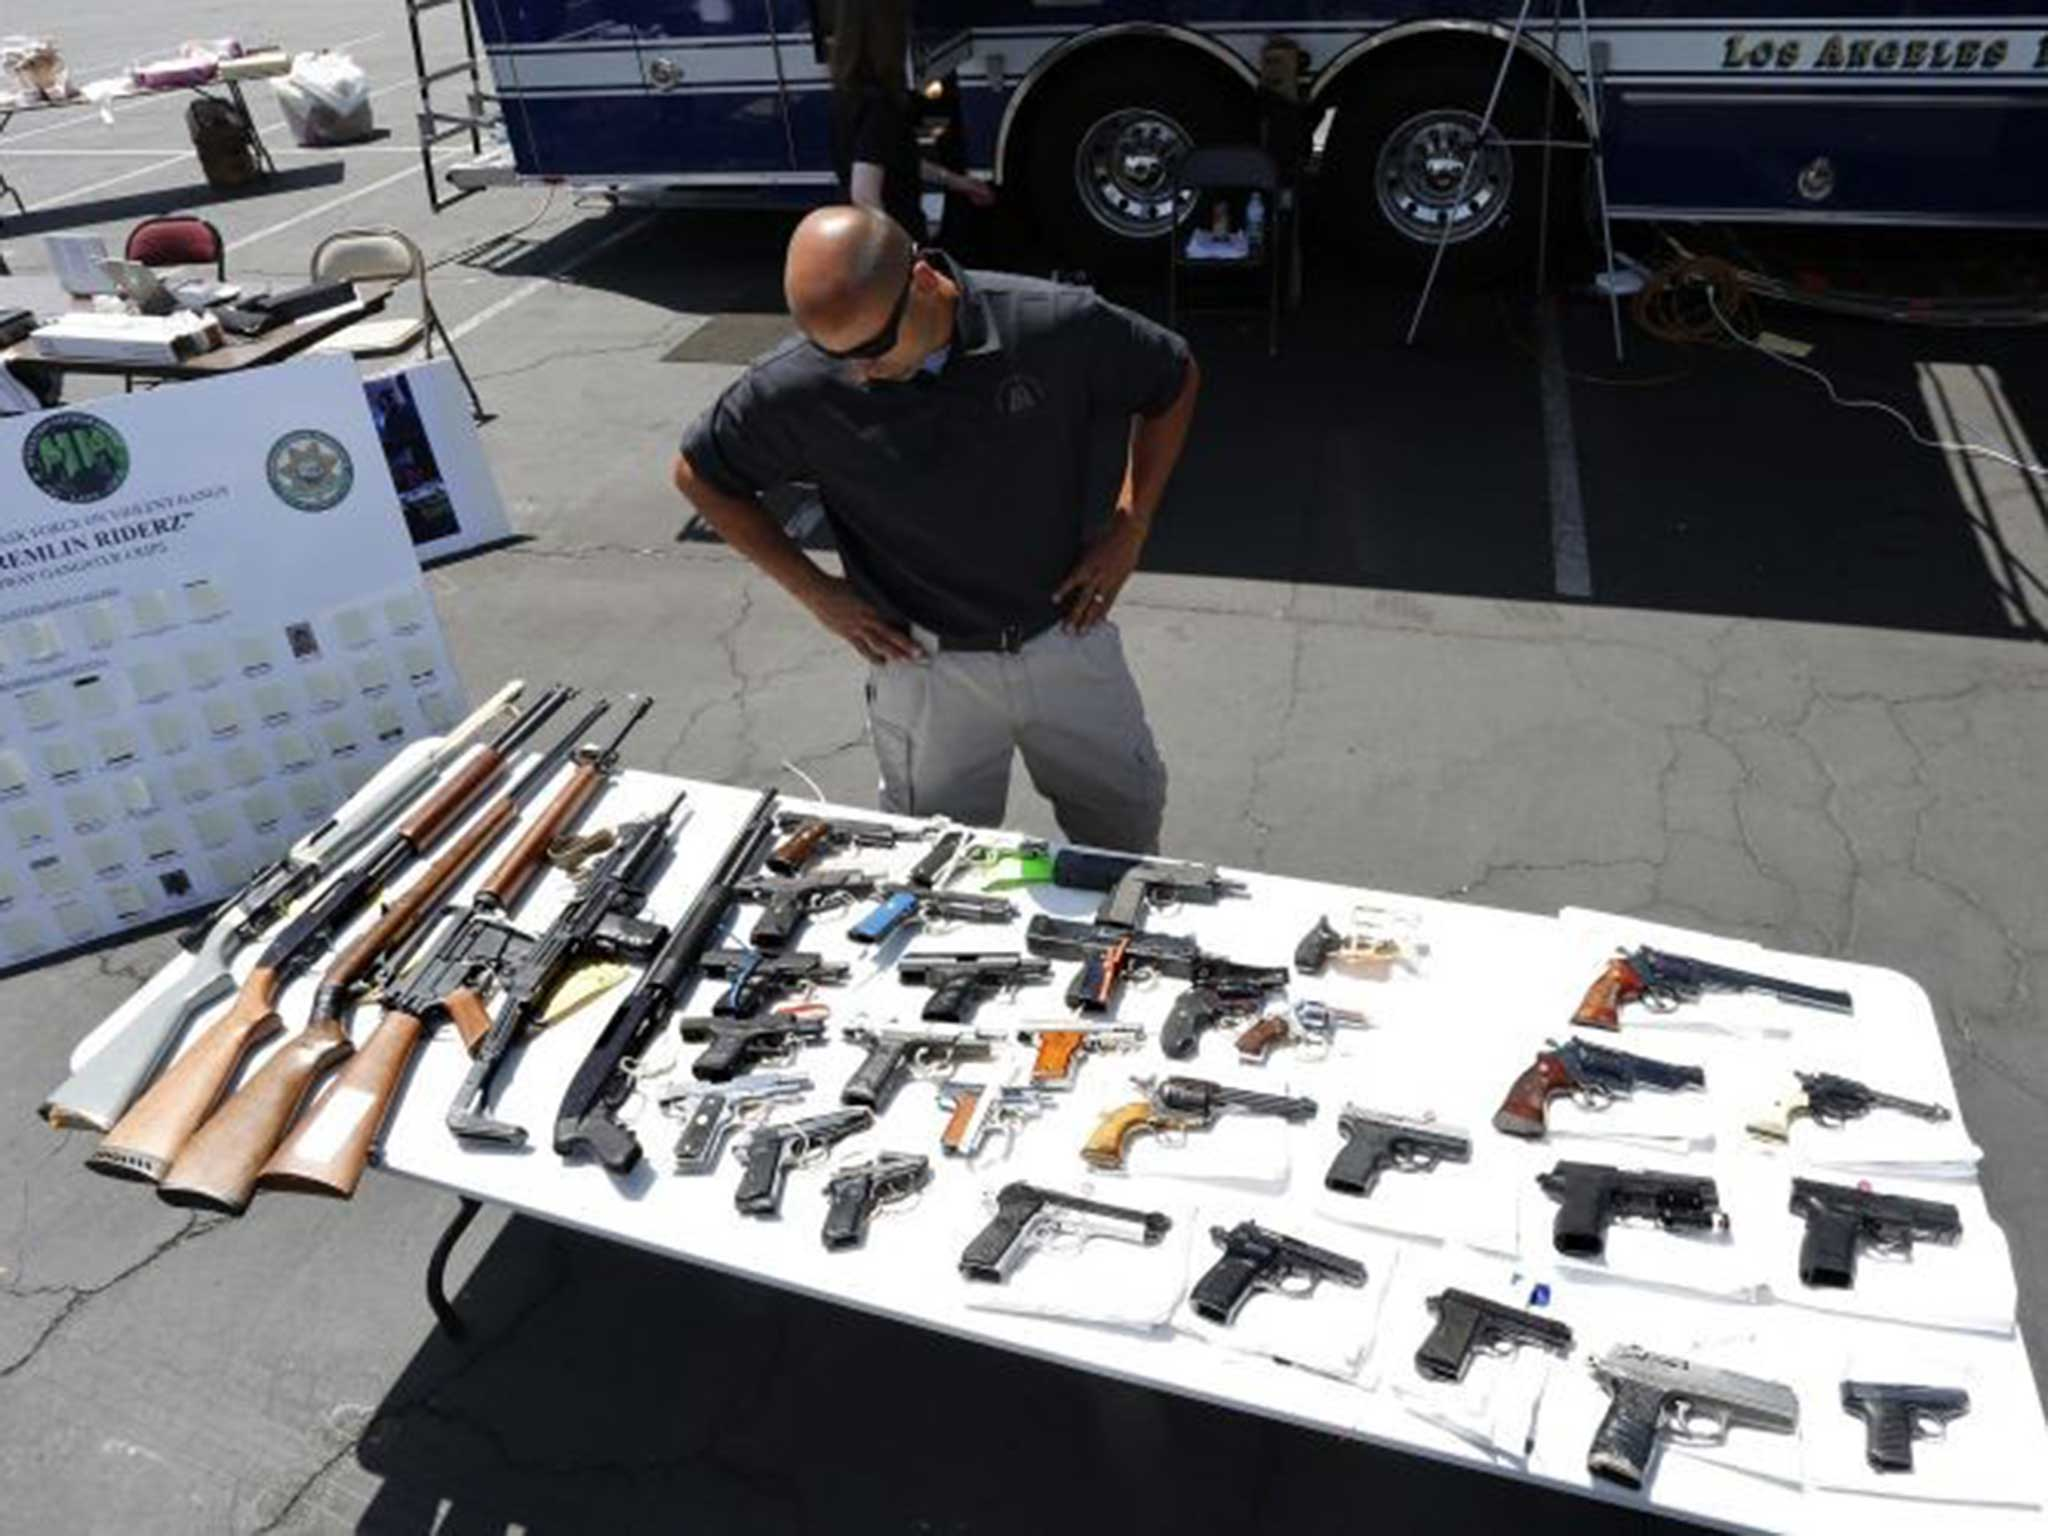 Gang dragnet sweeps up 72 of LA's hard-core Crips | The Independent